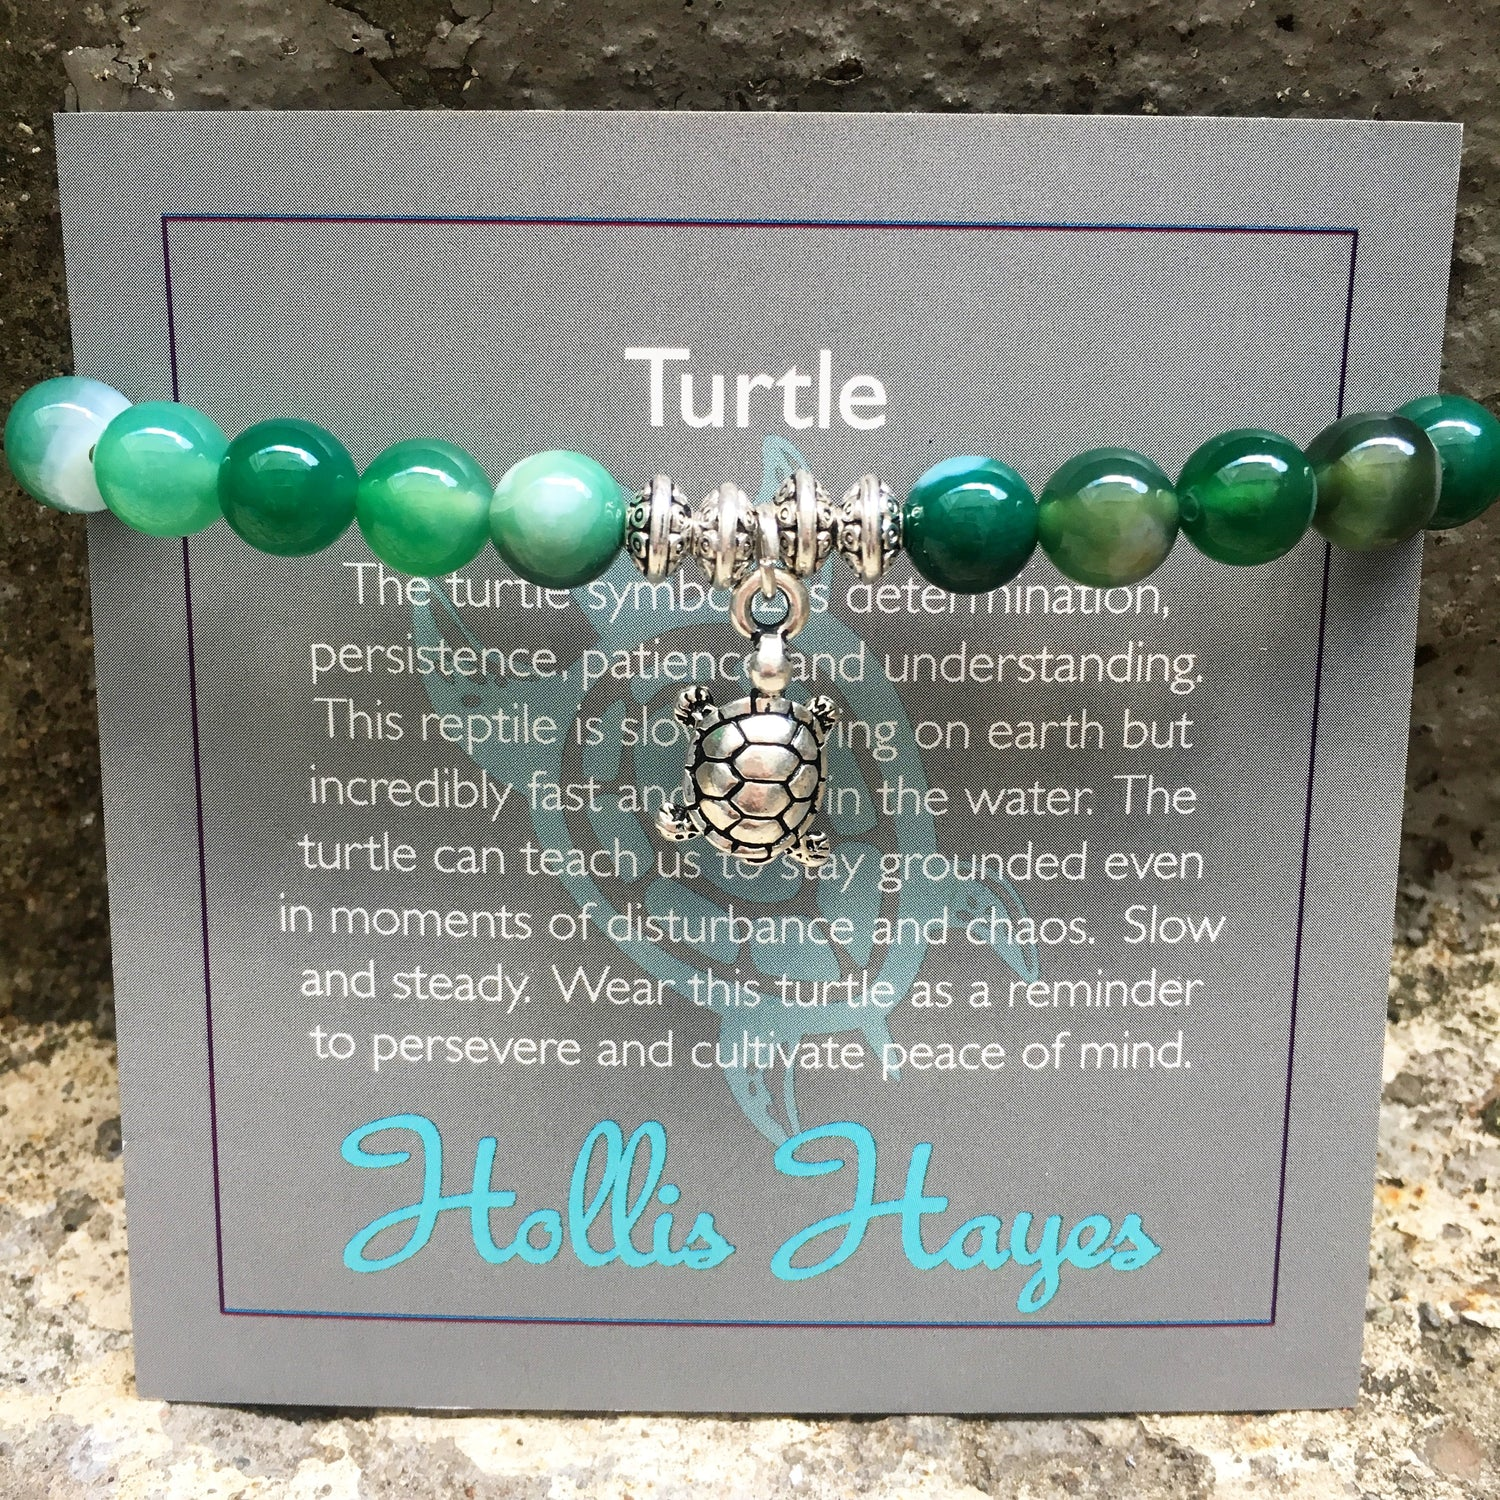 Turtle - Green Agate